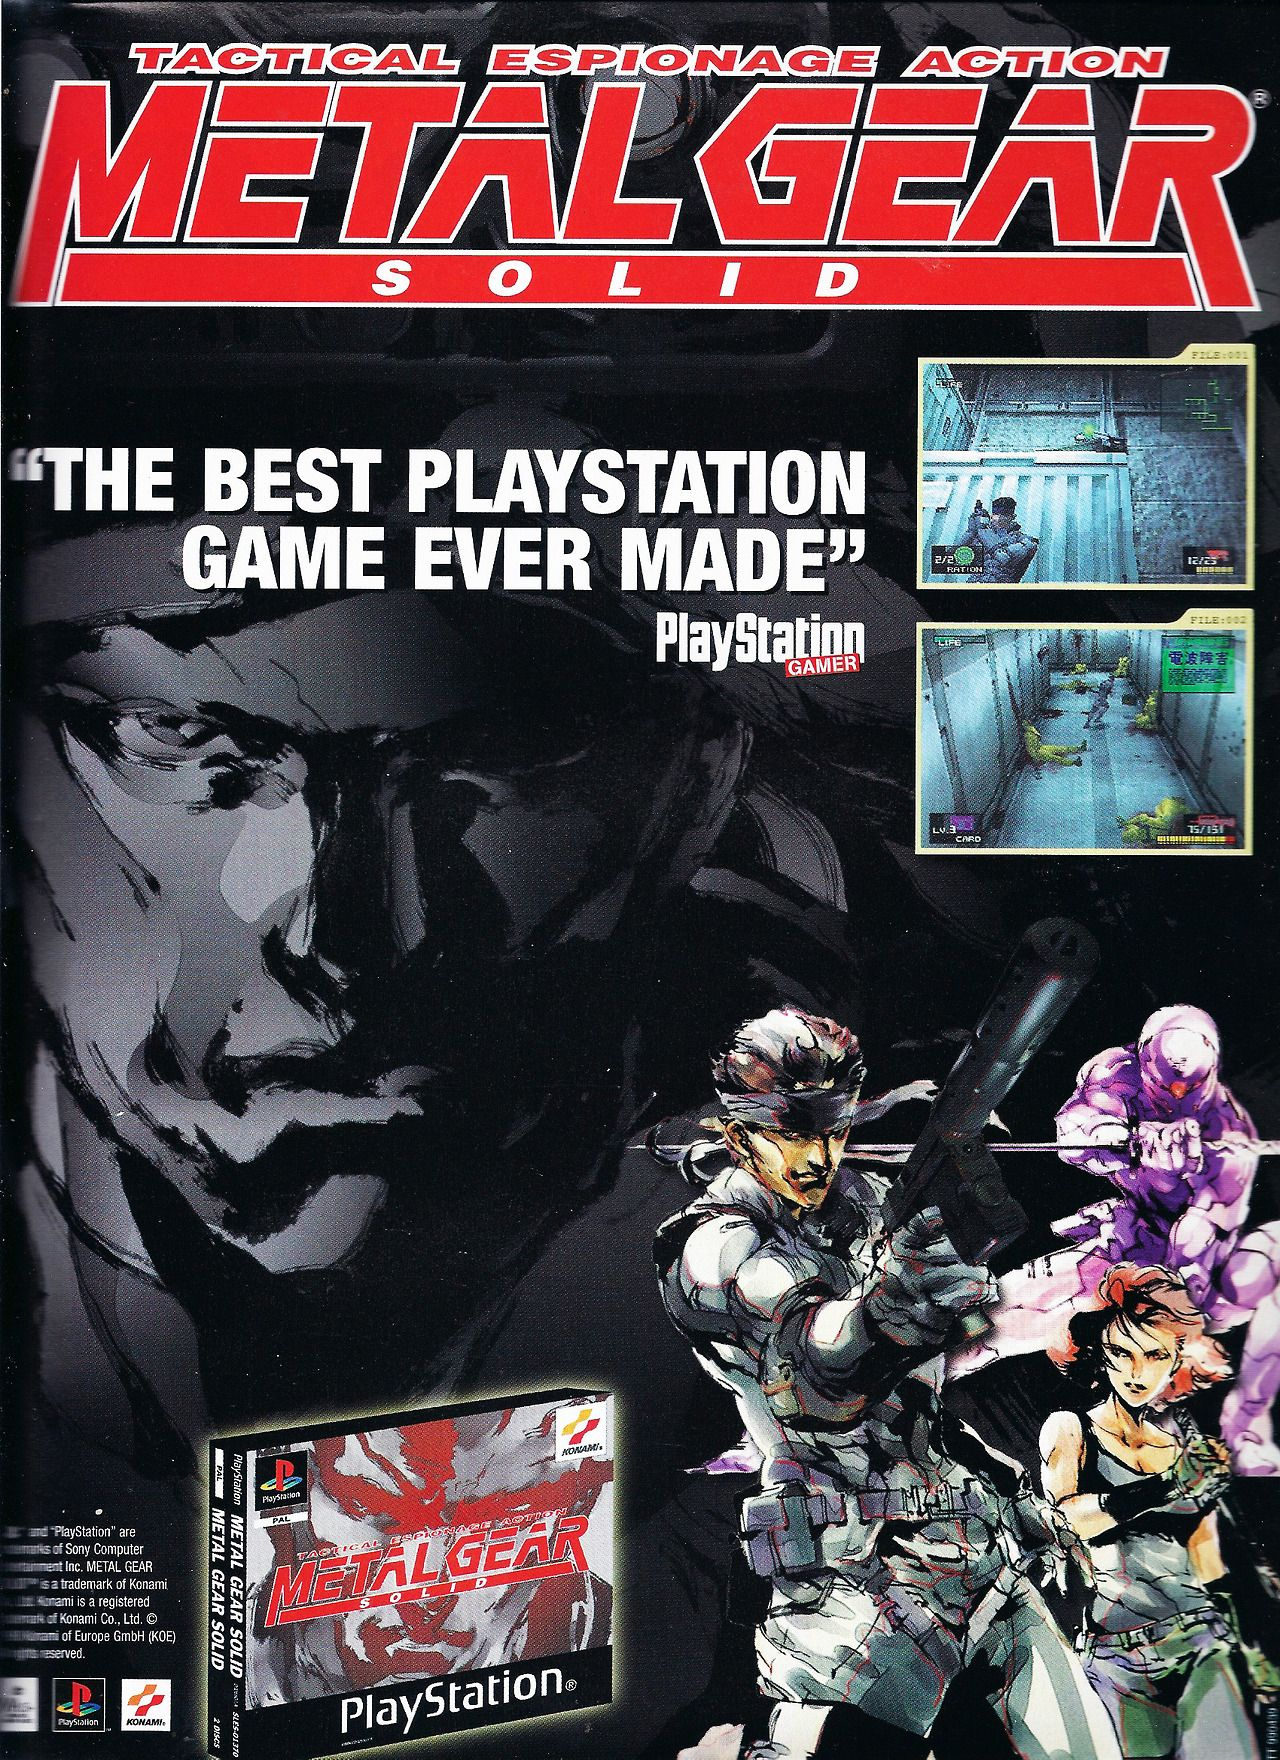 Metal Gear Solid Ps1 Playstation Advert Metal Gear Solid